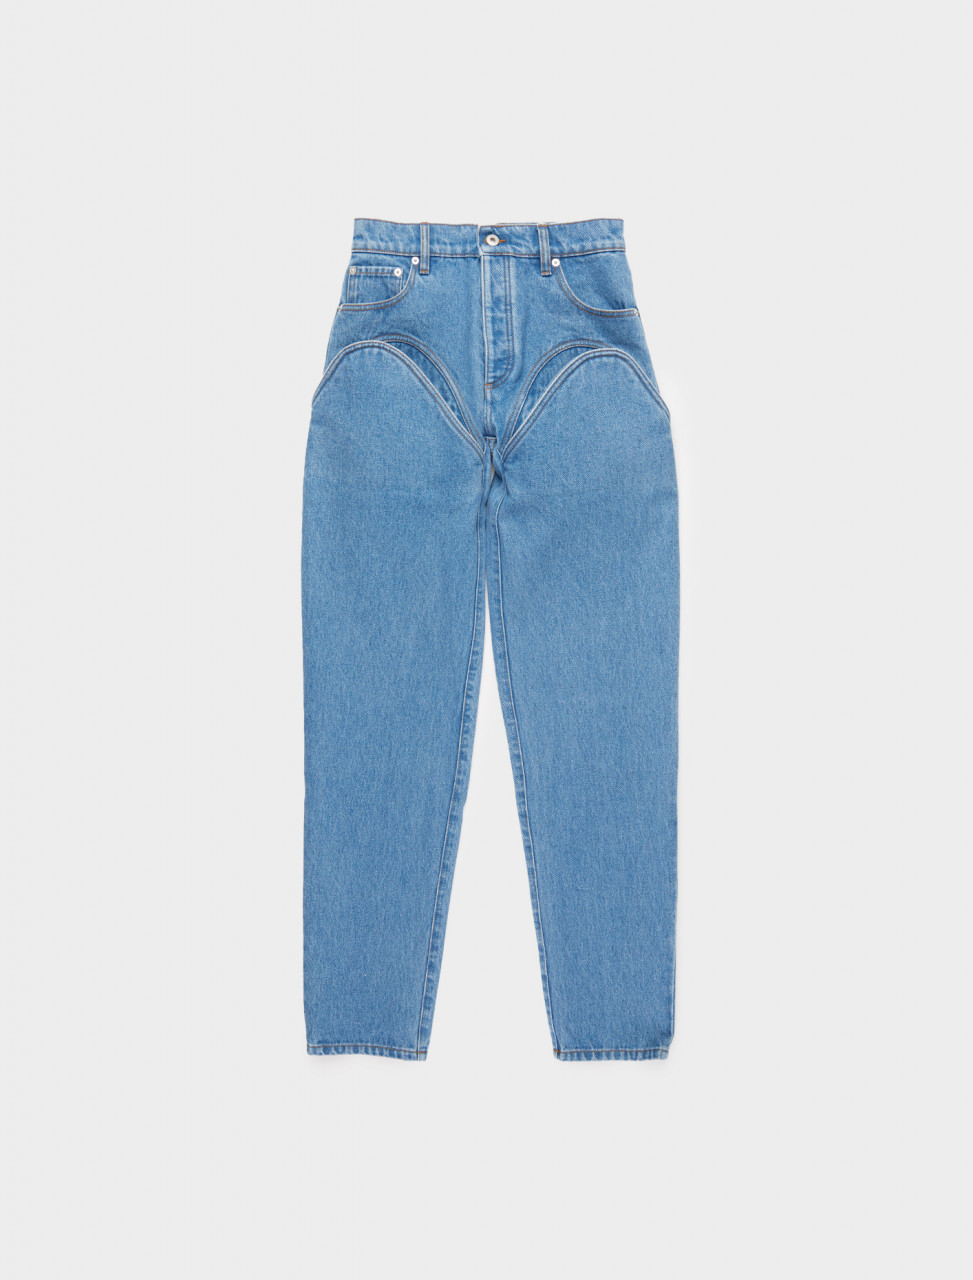 213-WJEAN30-S19-D14 Y PROJECT WJEAN ICE BLUE